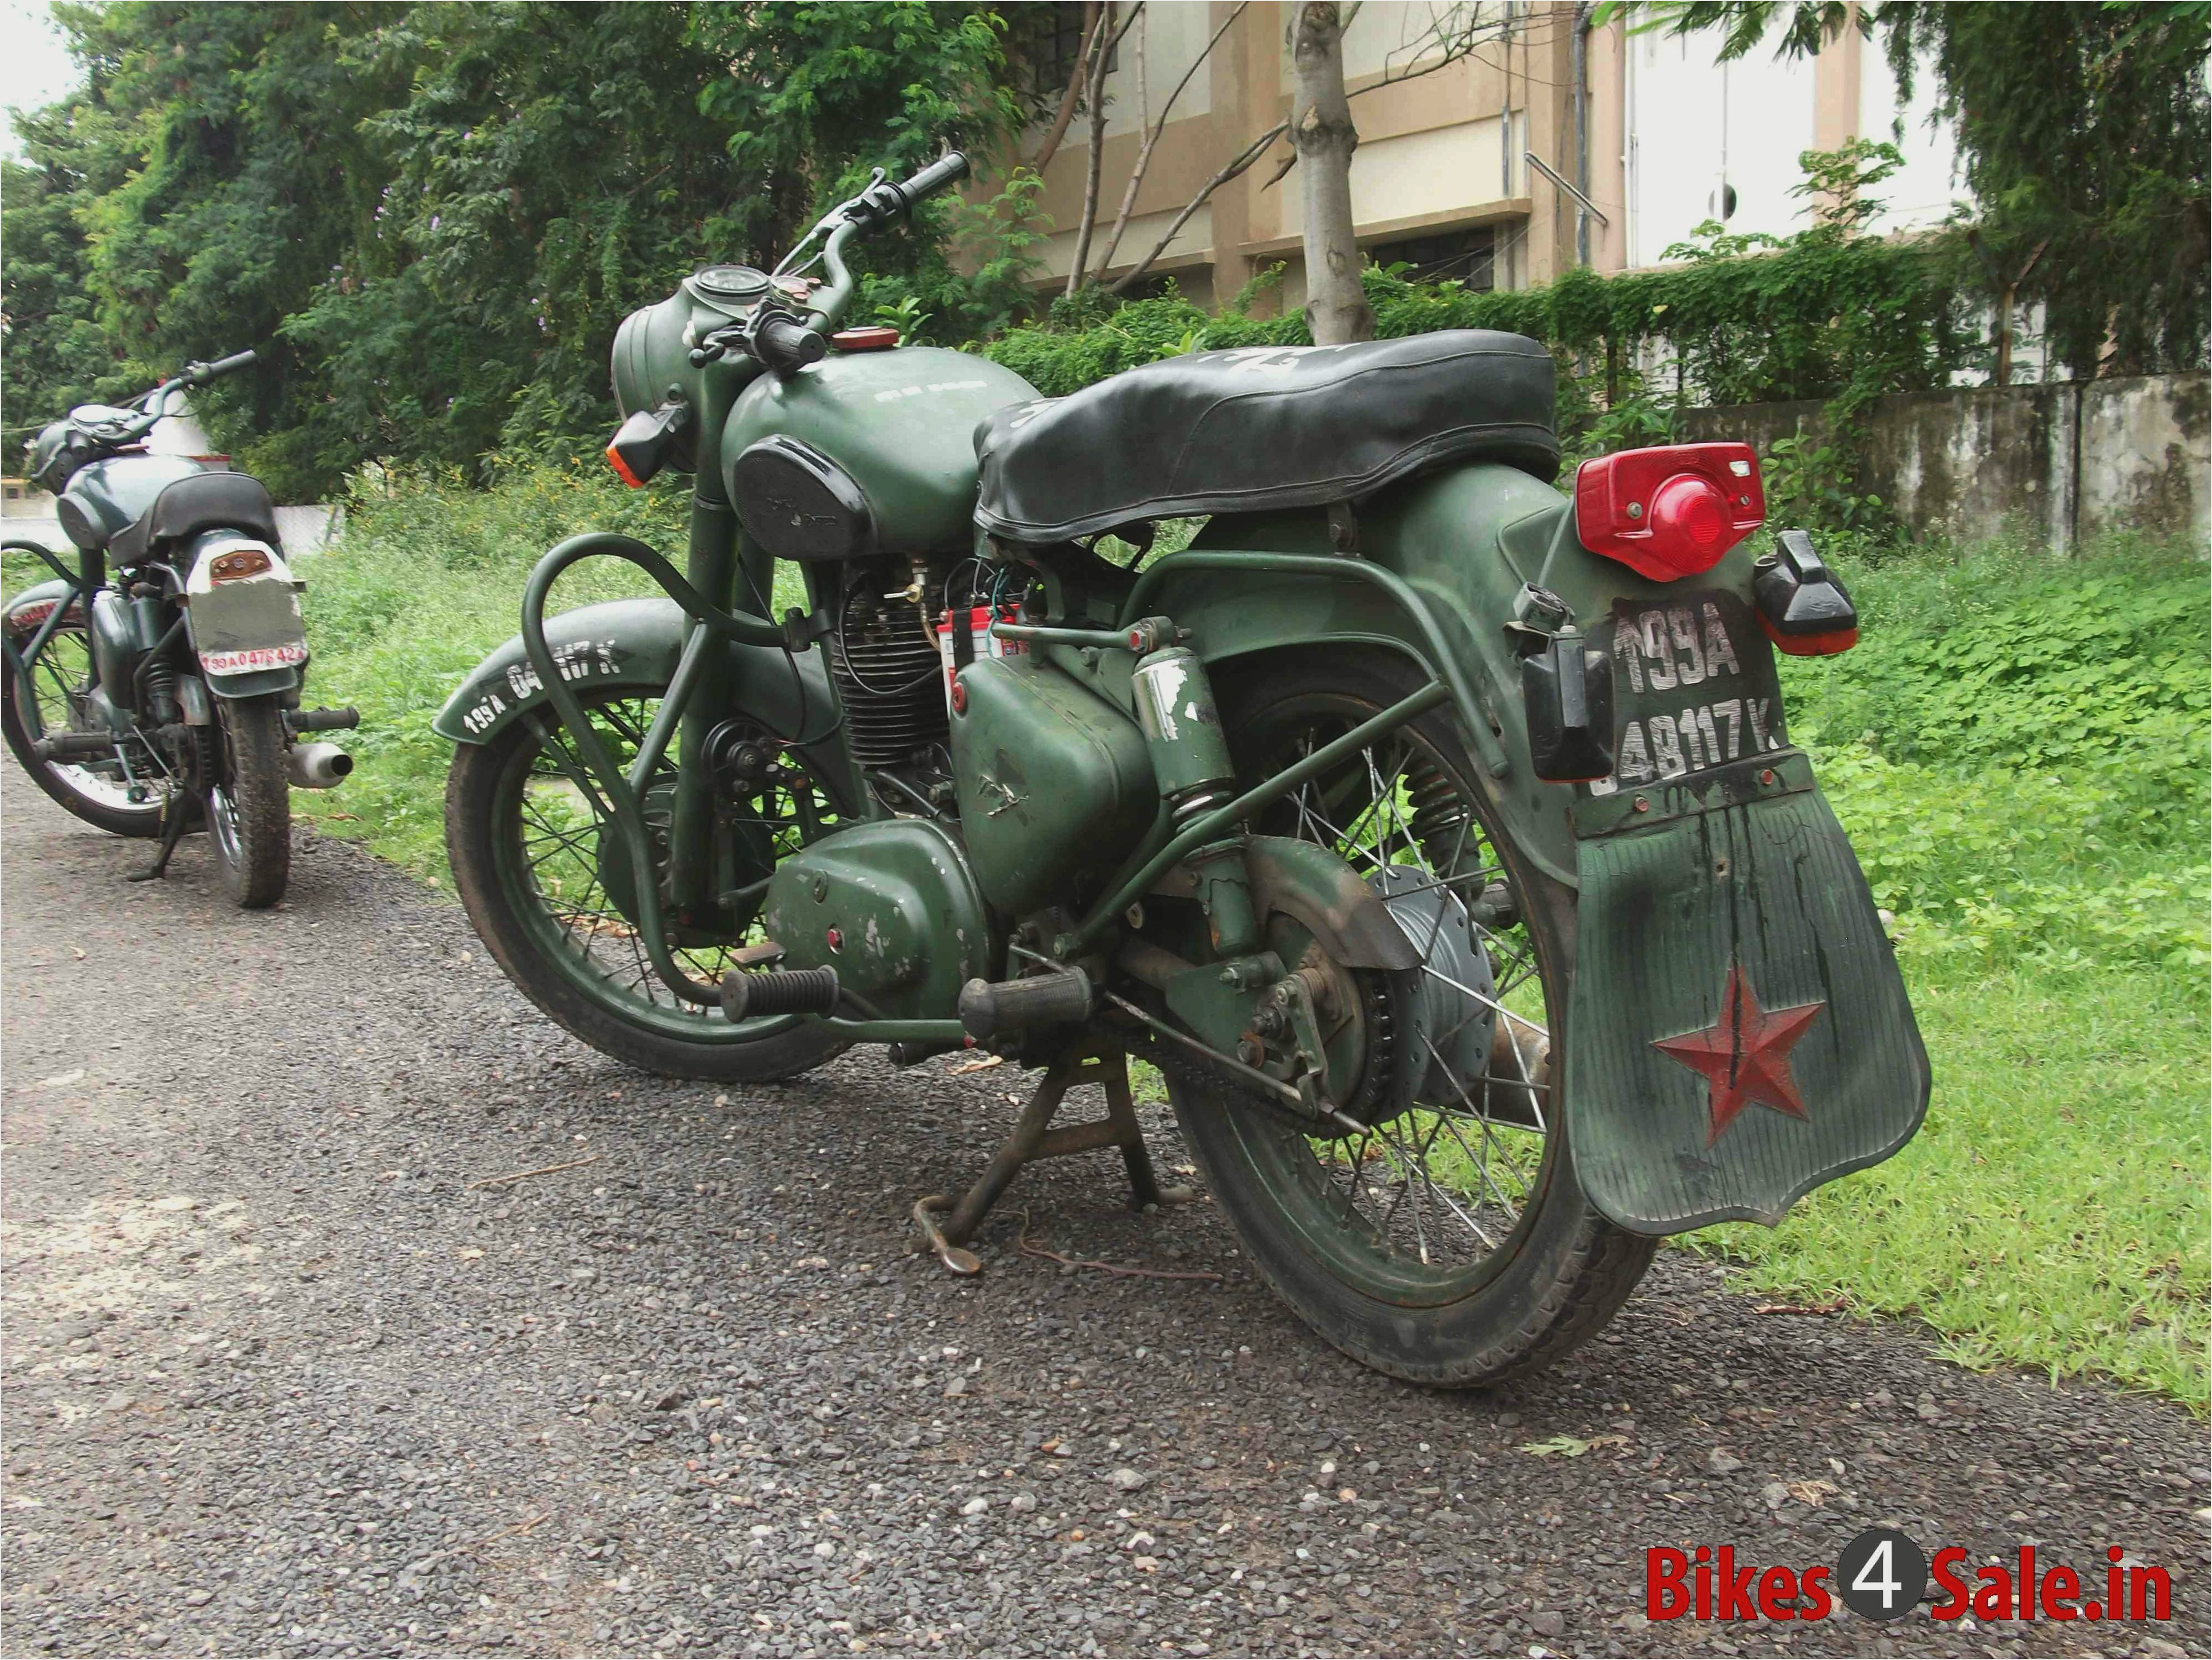 Royal Enfield Bullet 350 Army 1989 images #122474